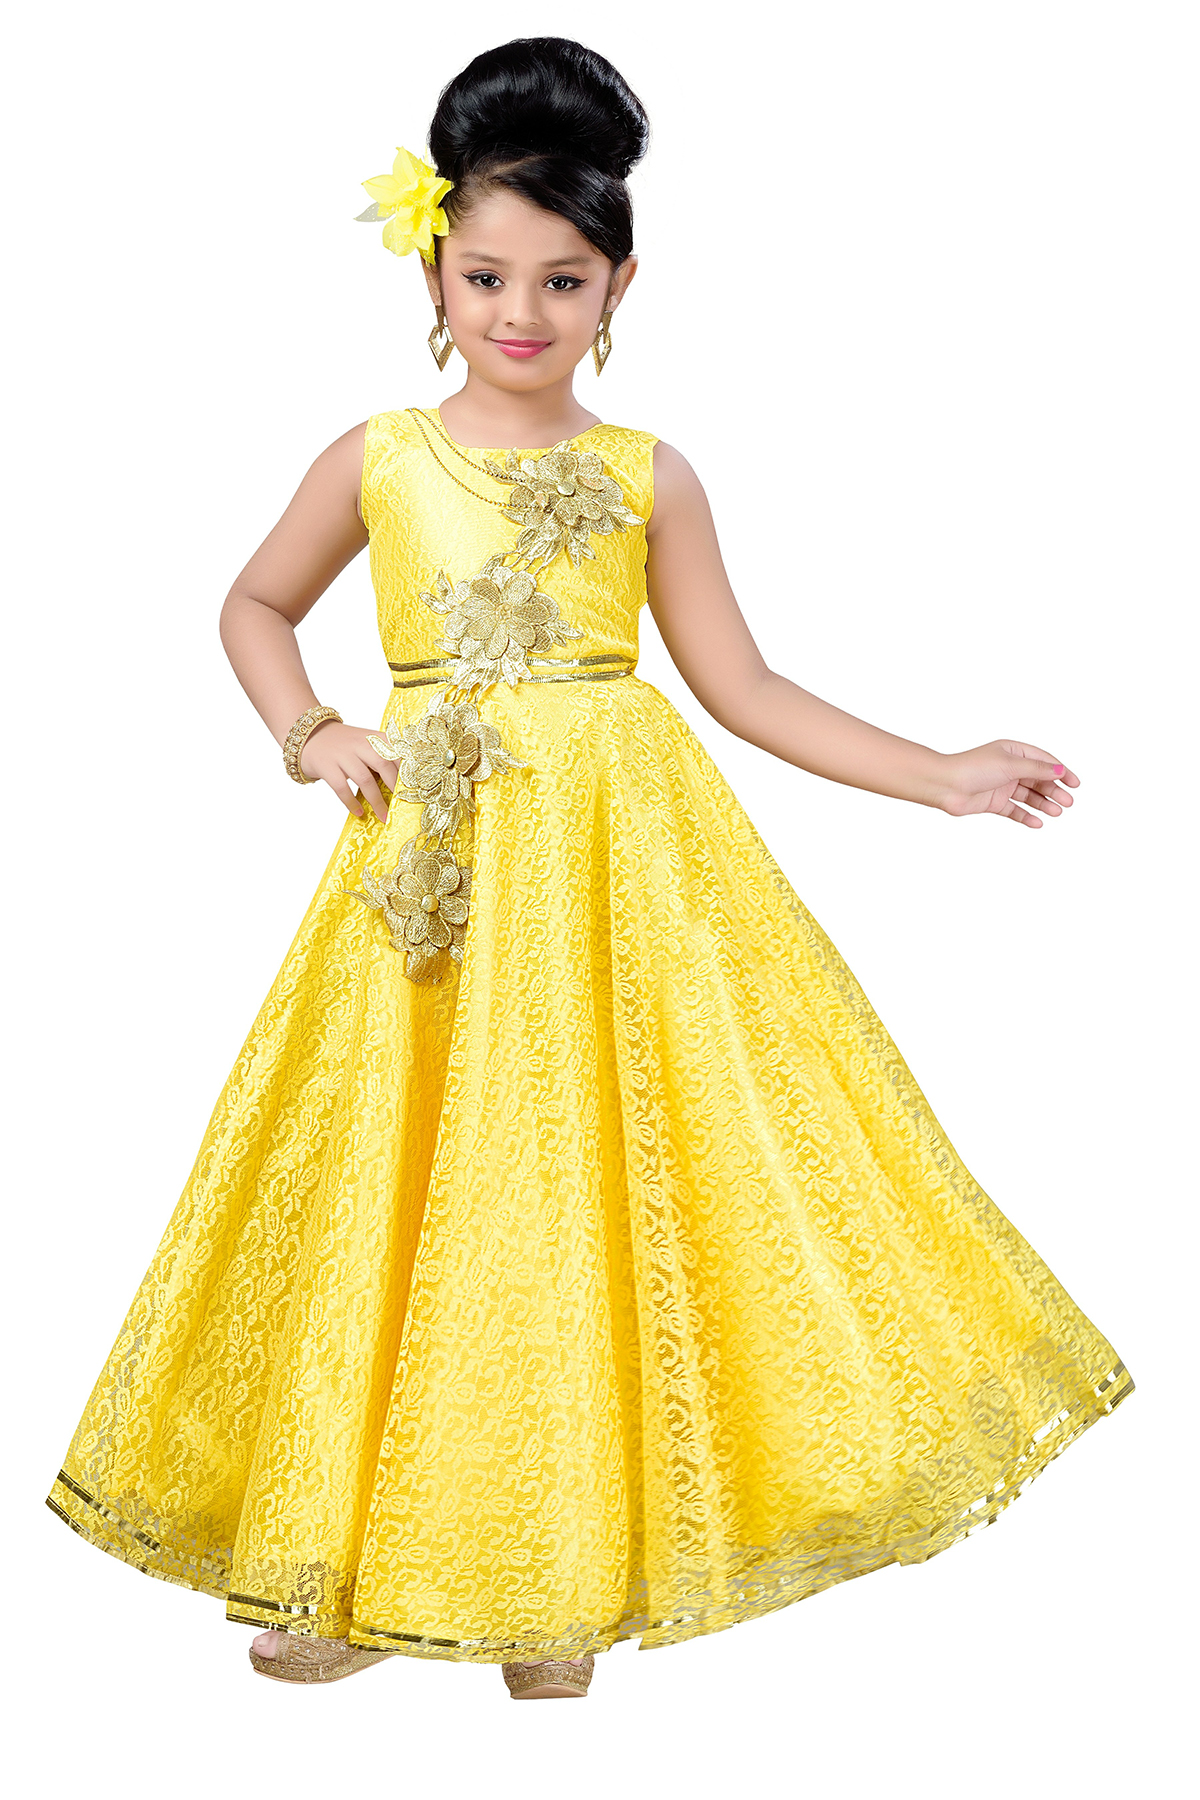 bb7d67a23a Girls Clothing - Buy Latest Girls Clothes Online at Low Prices